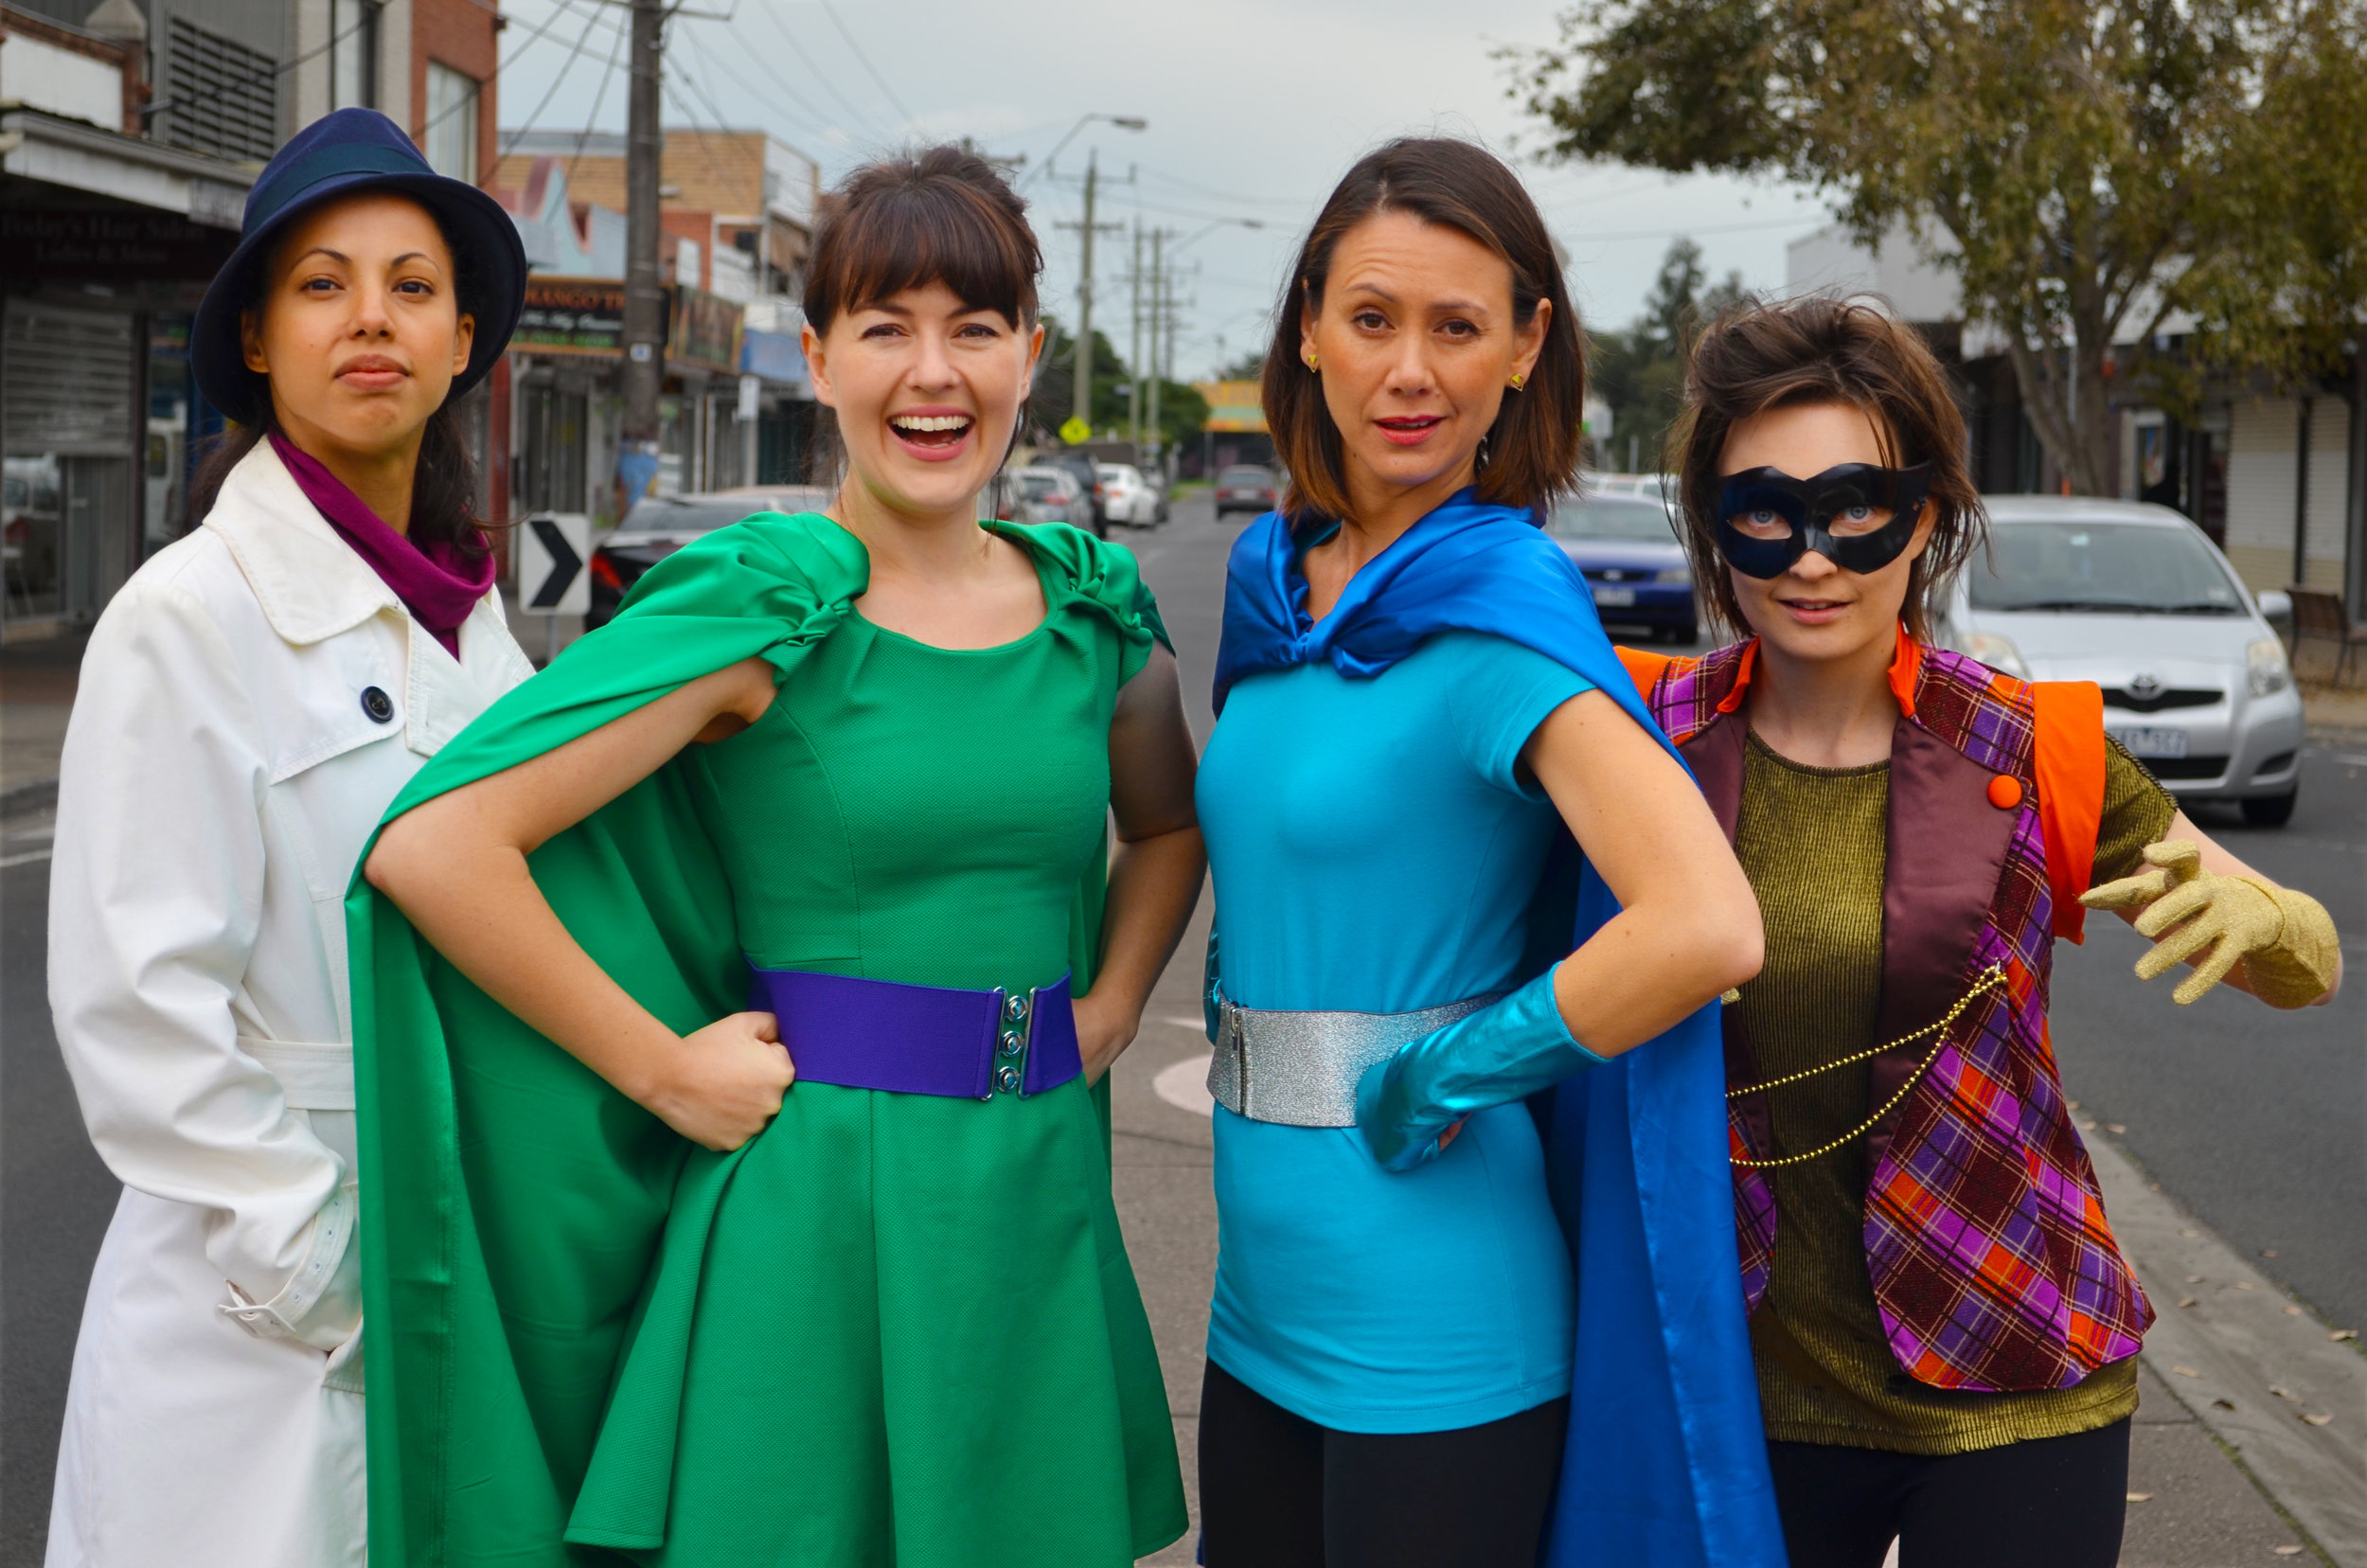 (L-R) Kerry du Plessis, Sarah Clarke, Emma Hayden and Belinda Campbell star in 'A Hero's Guide to Saving the Planet'